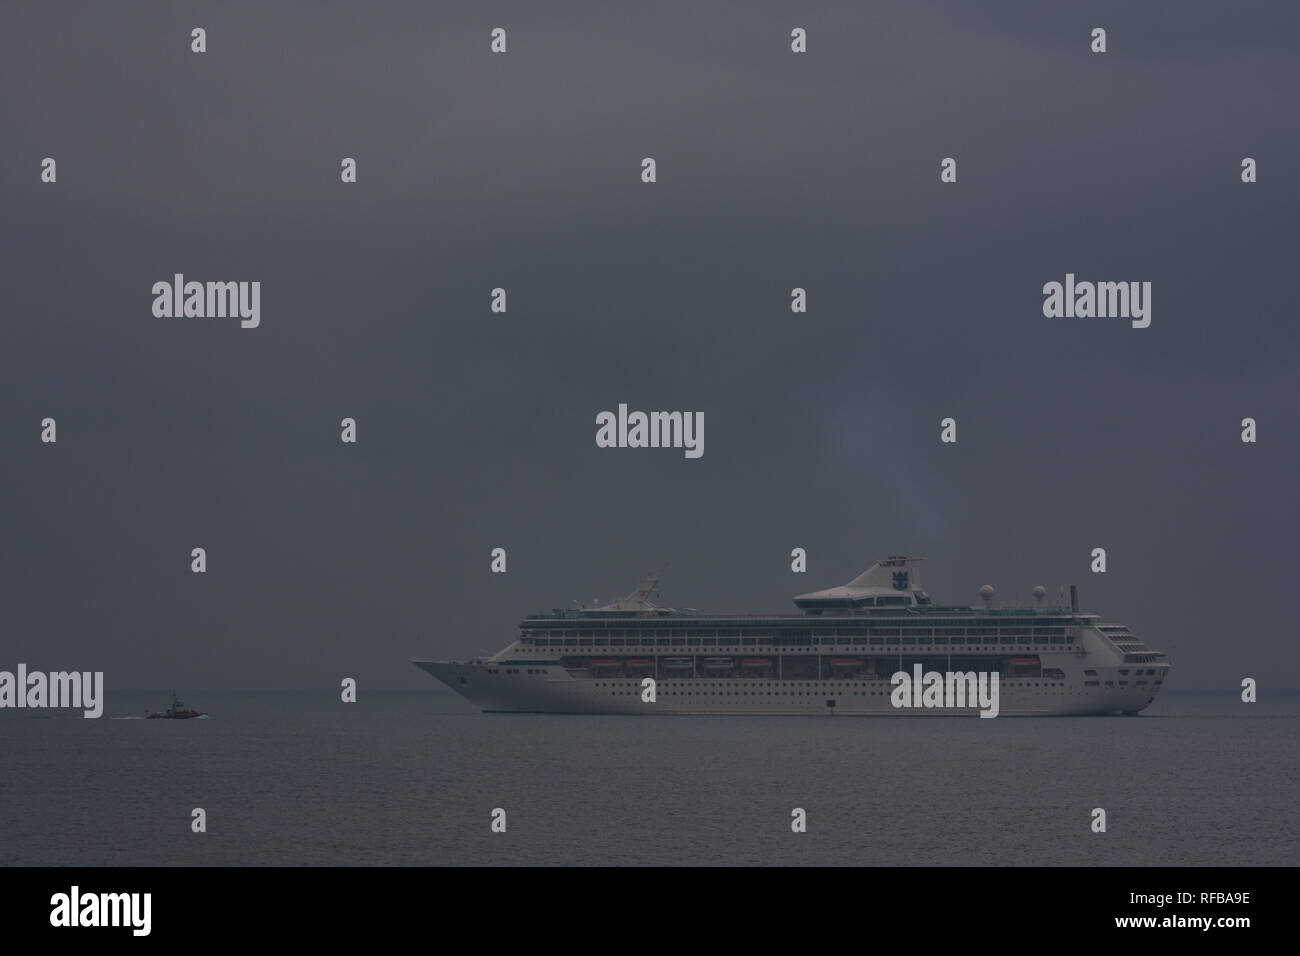 Royal Caribbean Cruises Ltd's Legend of the Seas cruise ship with pilot boat approaching, about to arrive at Hualien Port, Taiwan - Stock Image